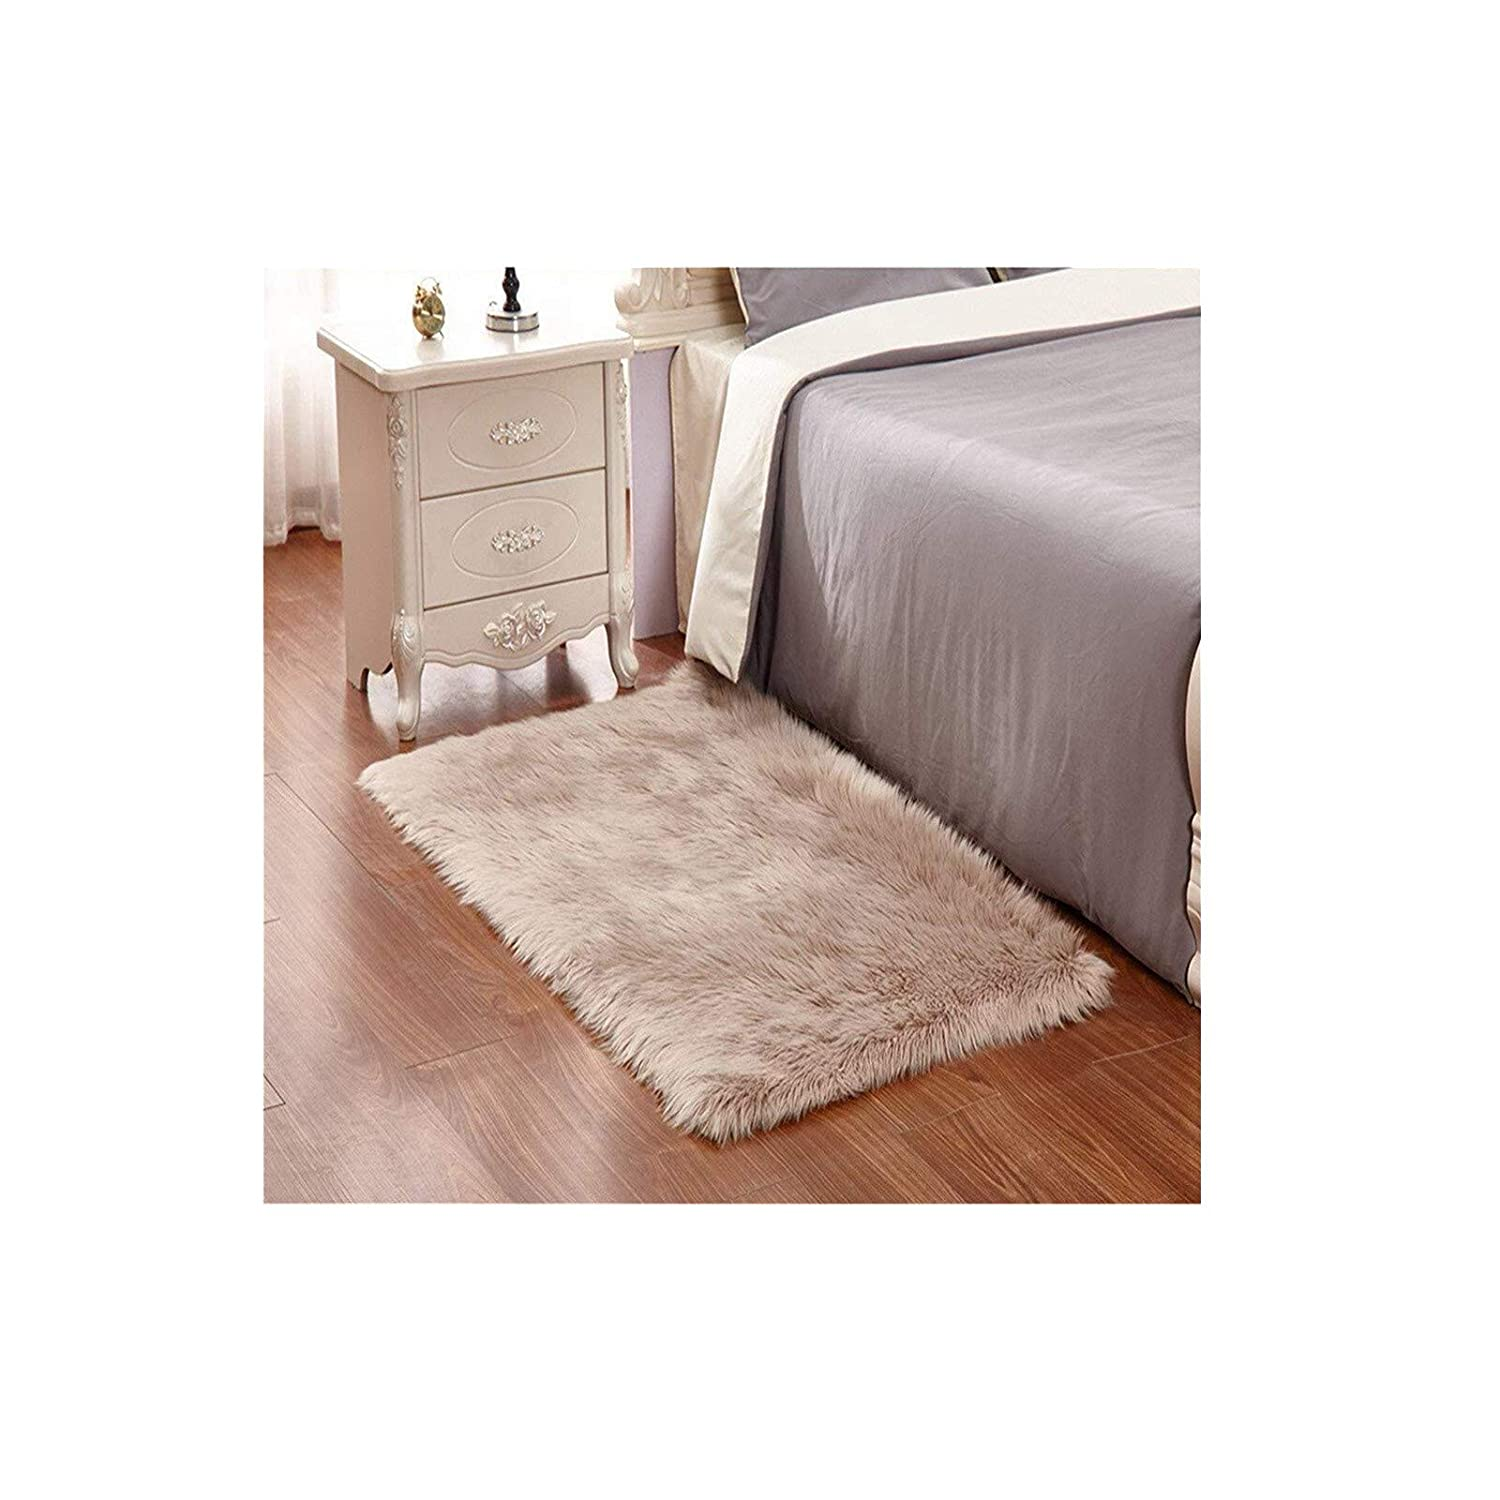 Faux Fur Rug 60 X 90 cm Soft Fluffy Rug Shaggy Rugs Faux Sheepskin Rugs Floor Carpet for Living Room Bedrooms Decor (White) YouLoveHome